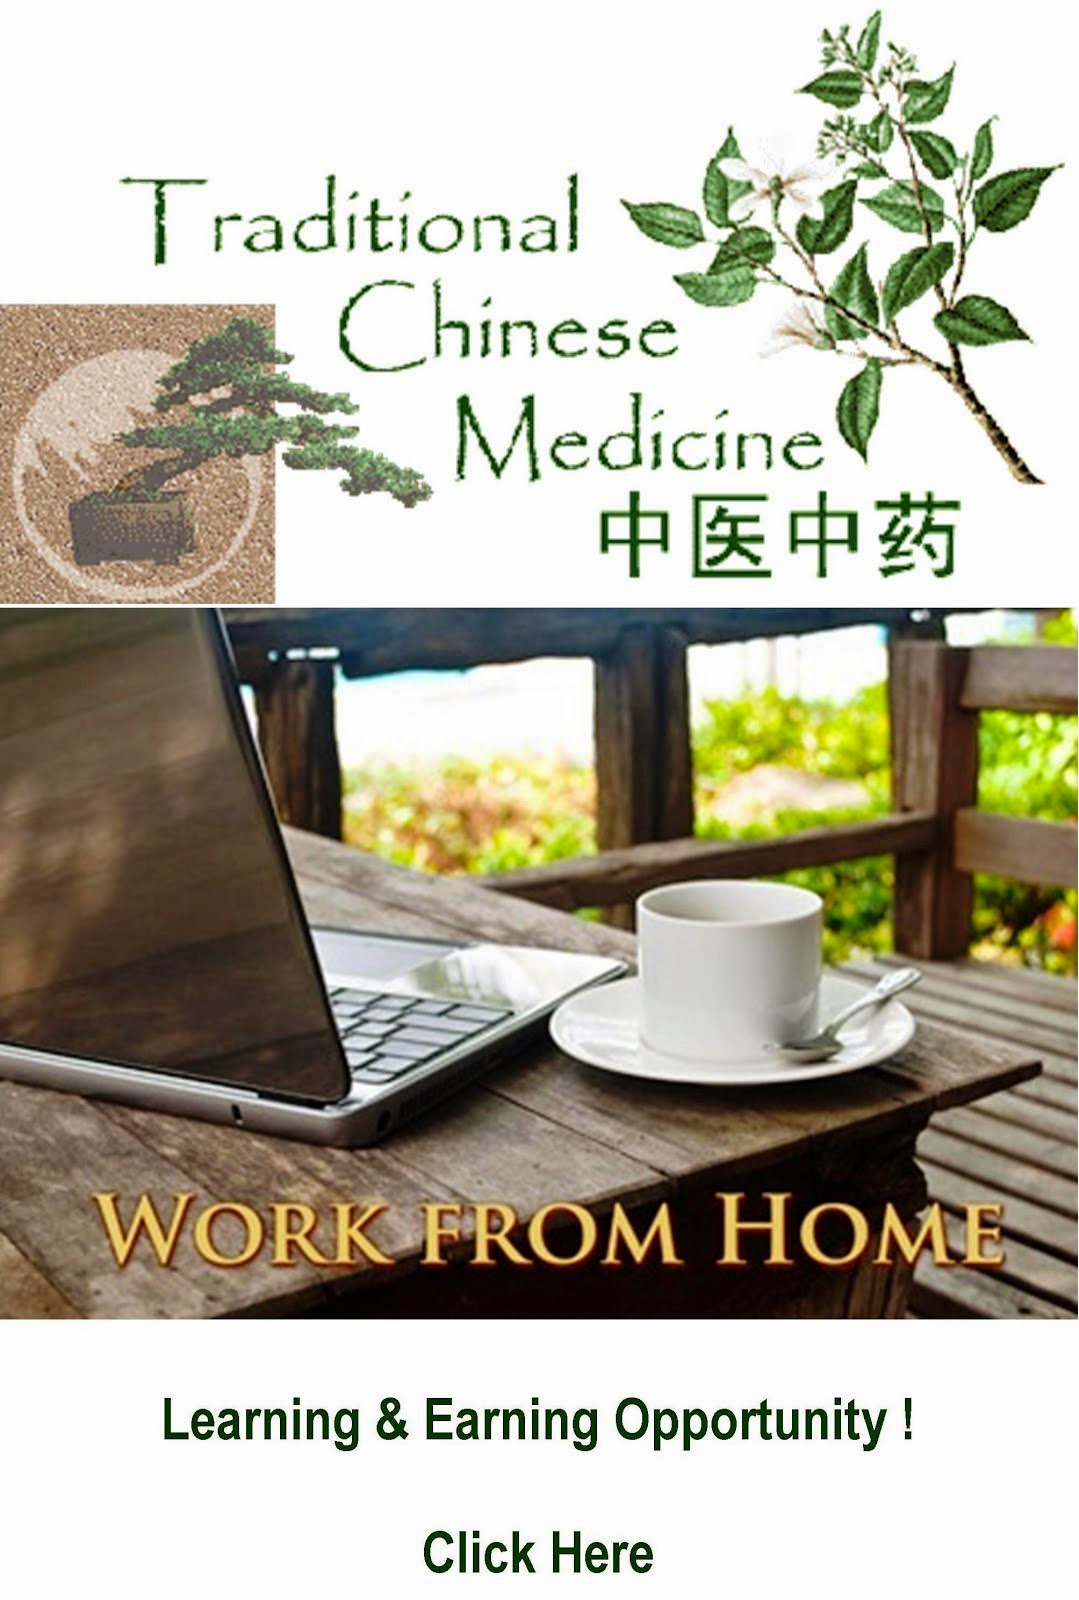 Be A TCM Based Wellness Consultant